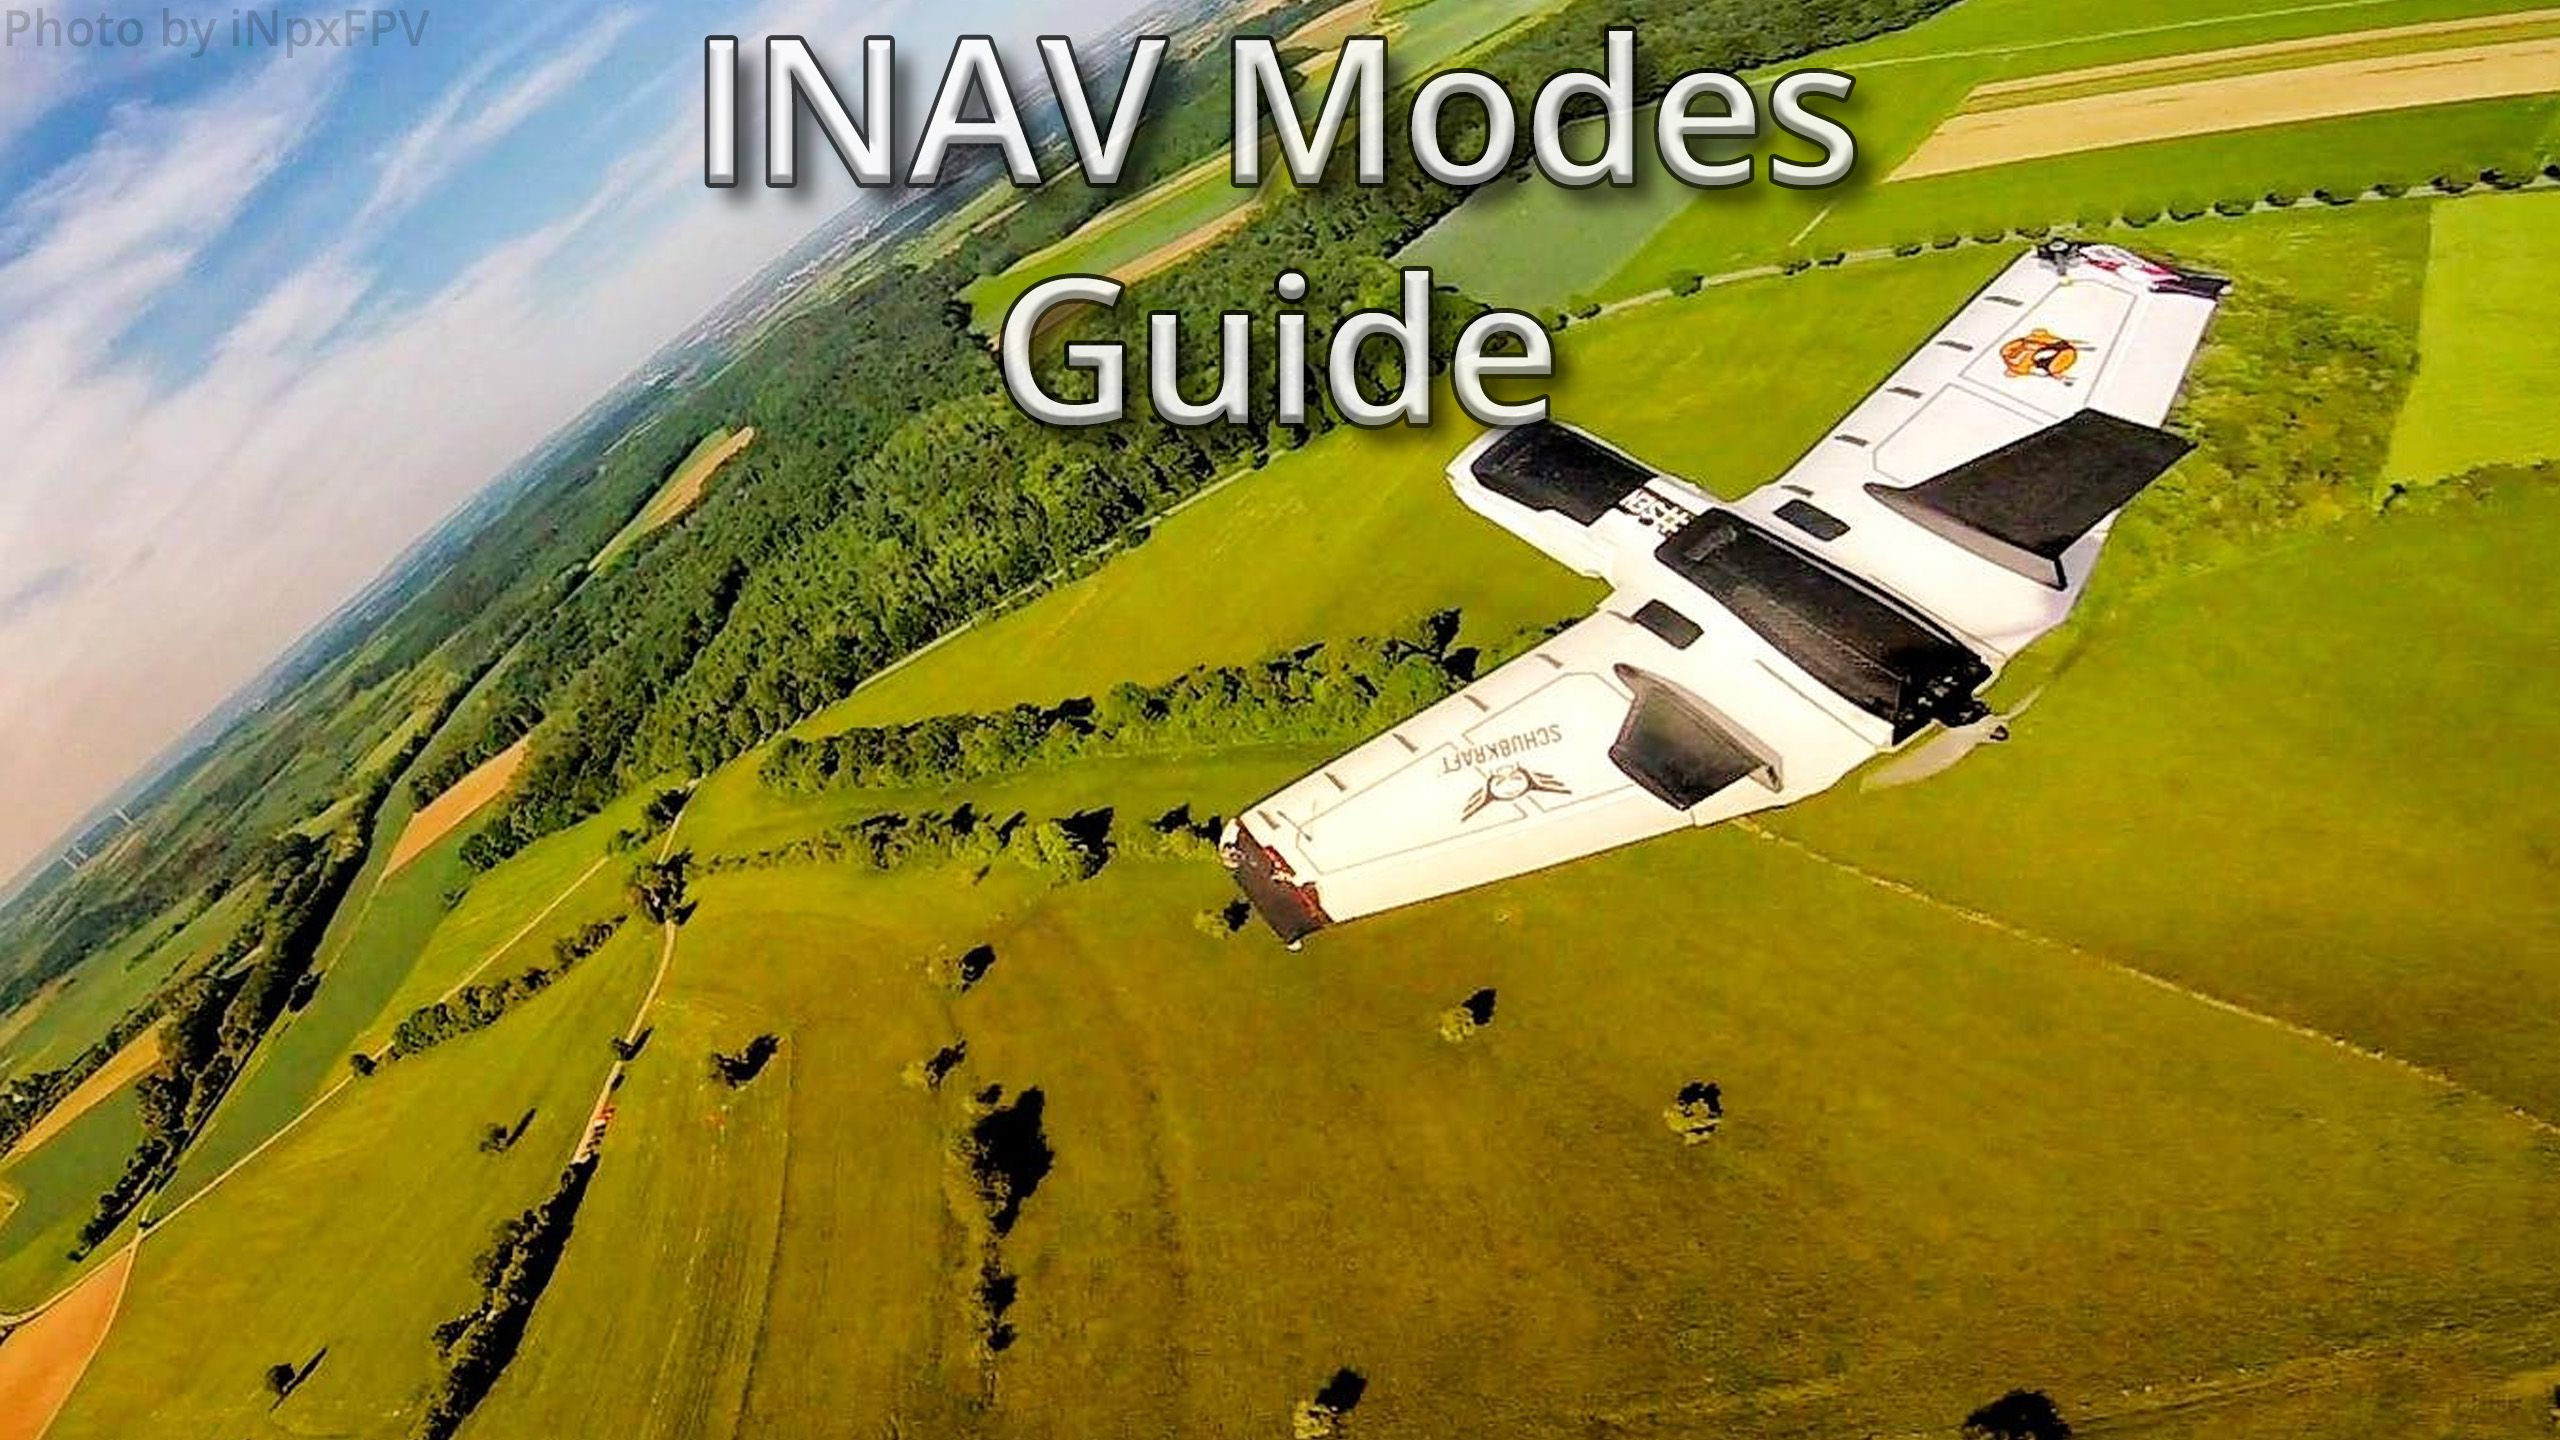 INAV Modes Guide: Learn the secrets of modes